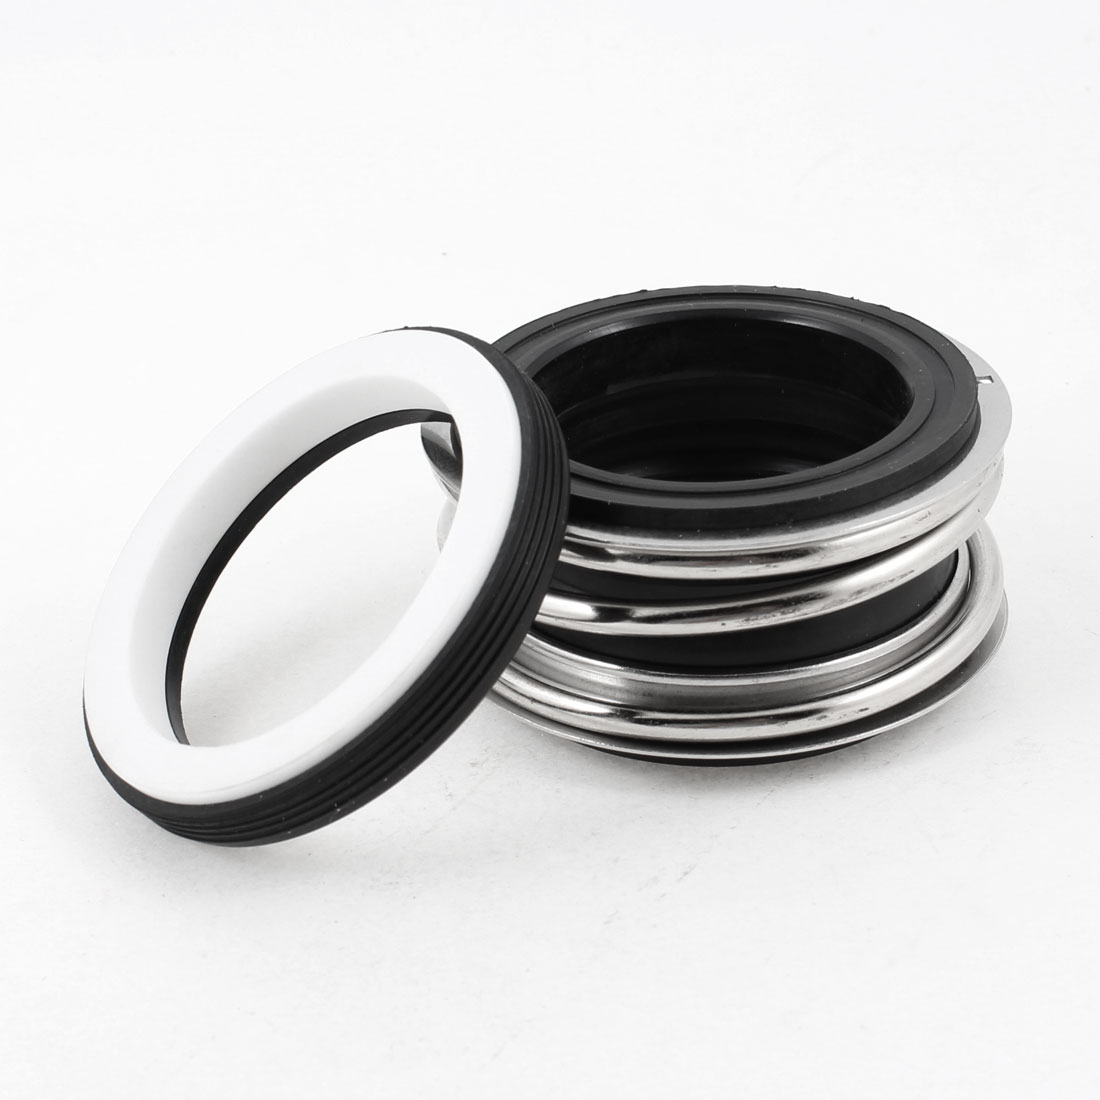 Industry 45mm Internal Diameter Rubber Bellows Mechanical Seal MB1-45